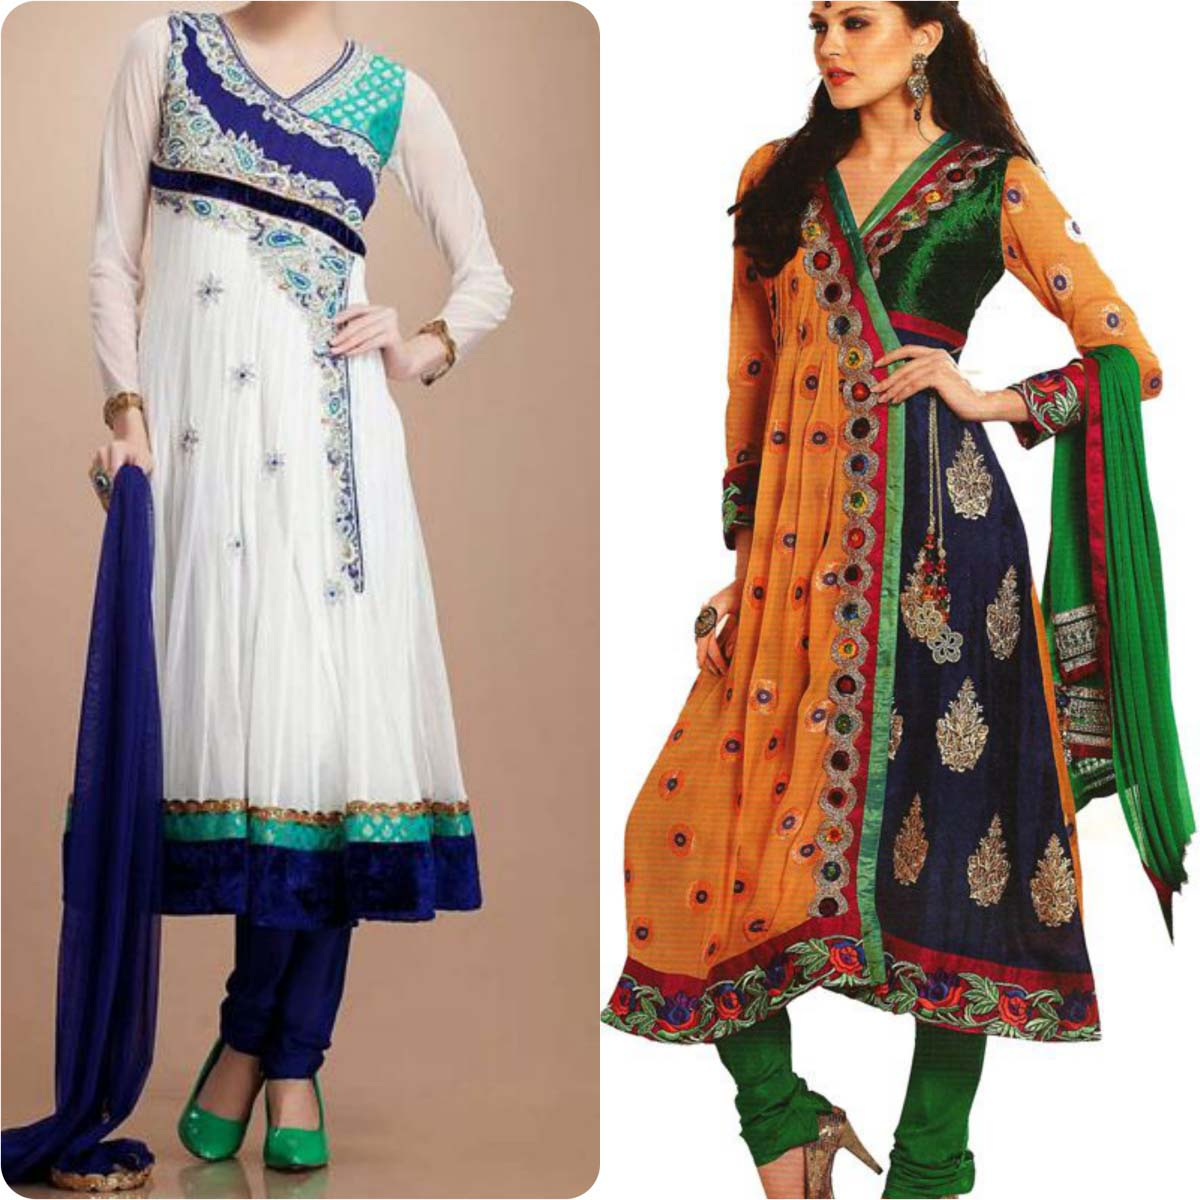 Shirt design for girl 2016